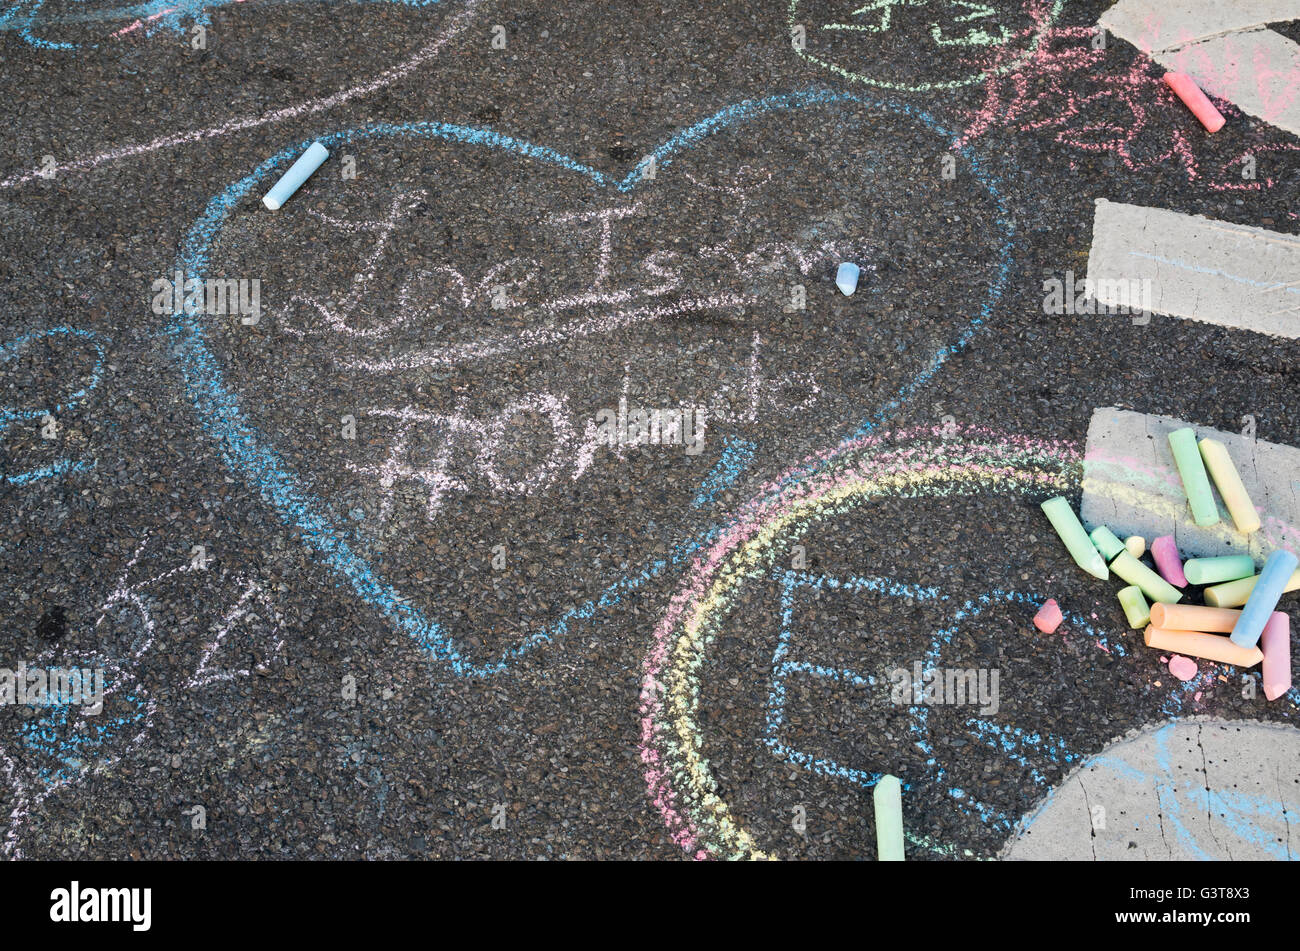 Chalk drawing on road tarmac of heart with Love Is Love #Orlando in tribute to the 2016 shootings. - Stock Image